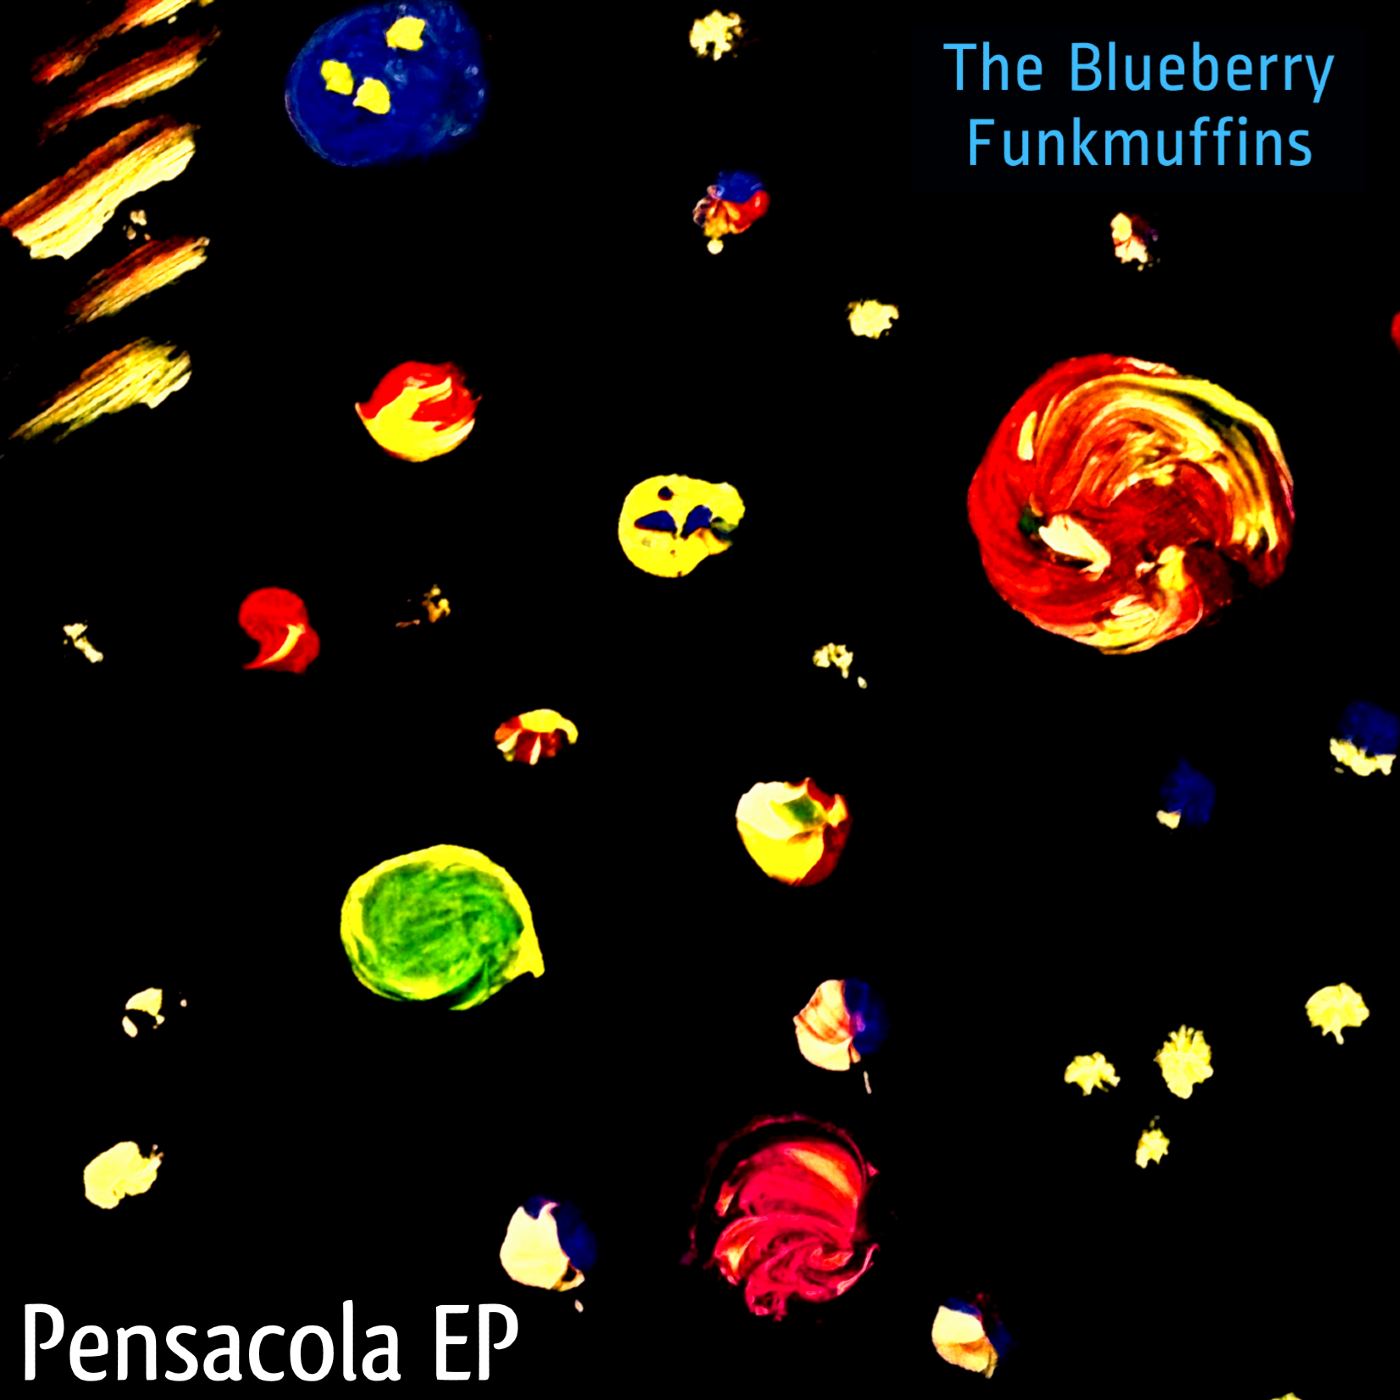 Cover art for the EP Pensacola by The Blueberry Funkmuffins